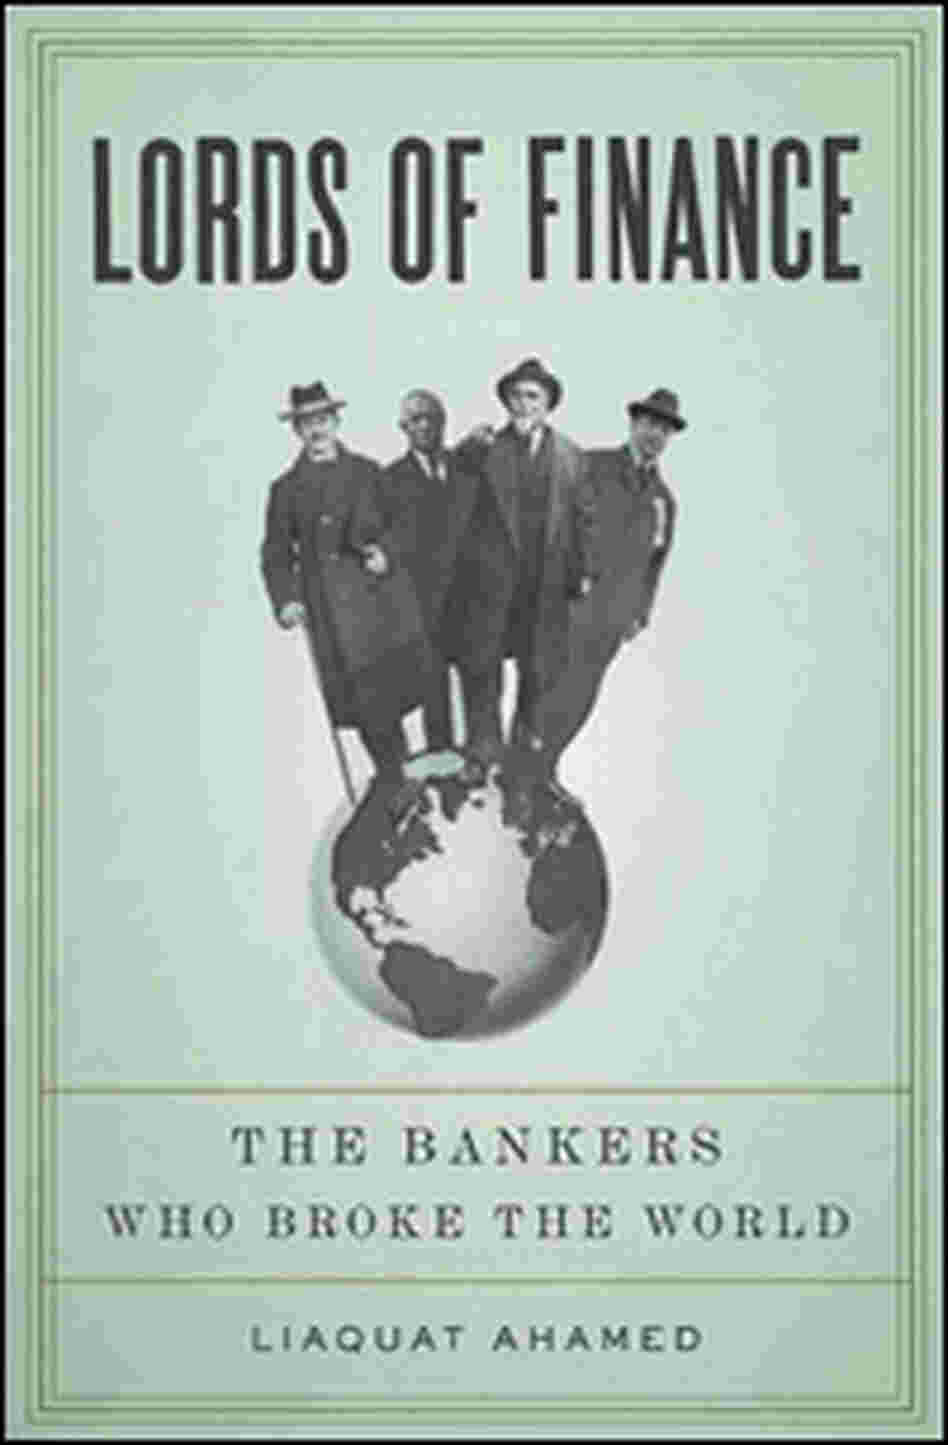 'Lords of Finance' cover